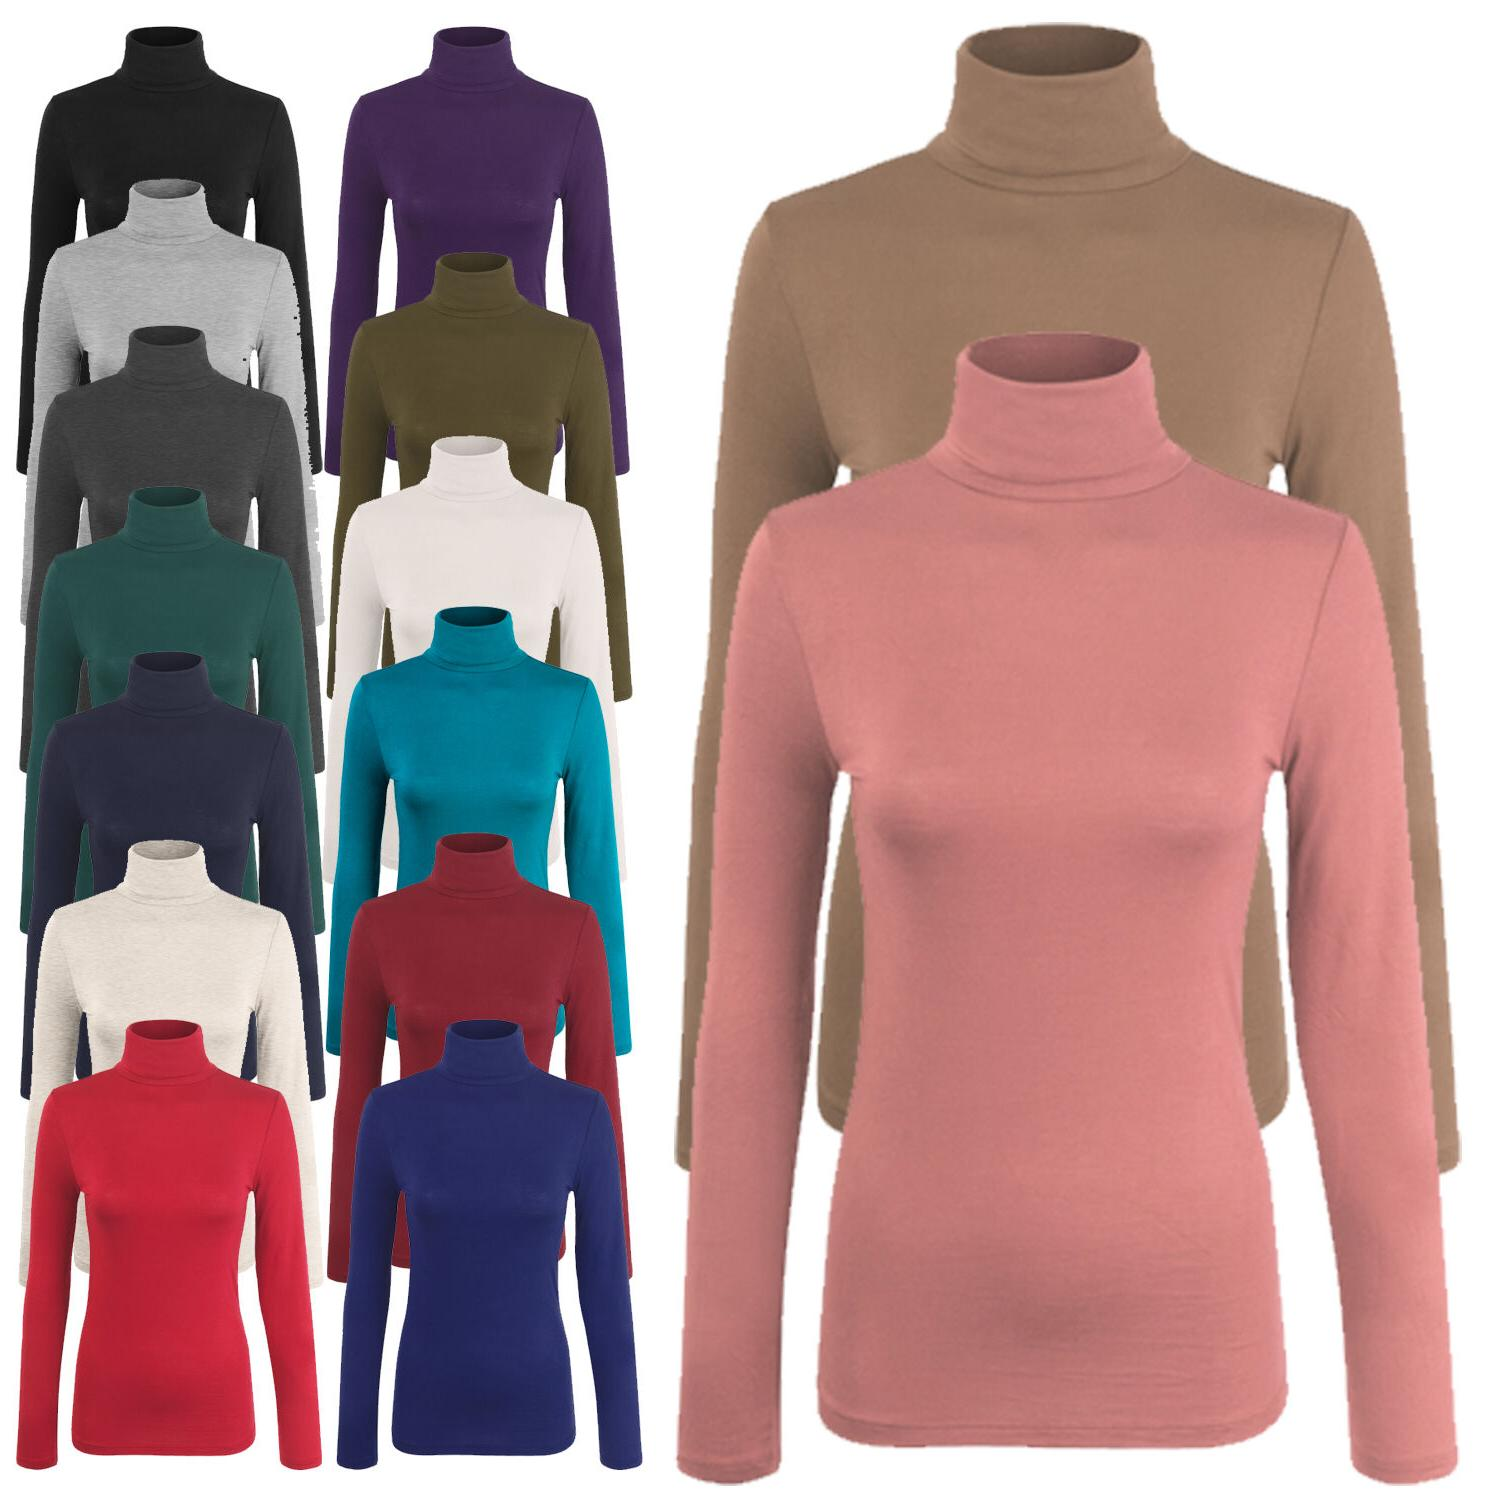 Women's Turtleneck Long Sleeve Basic Solid Fitted Shirt with